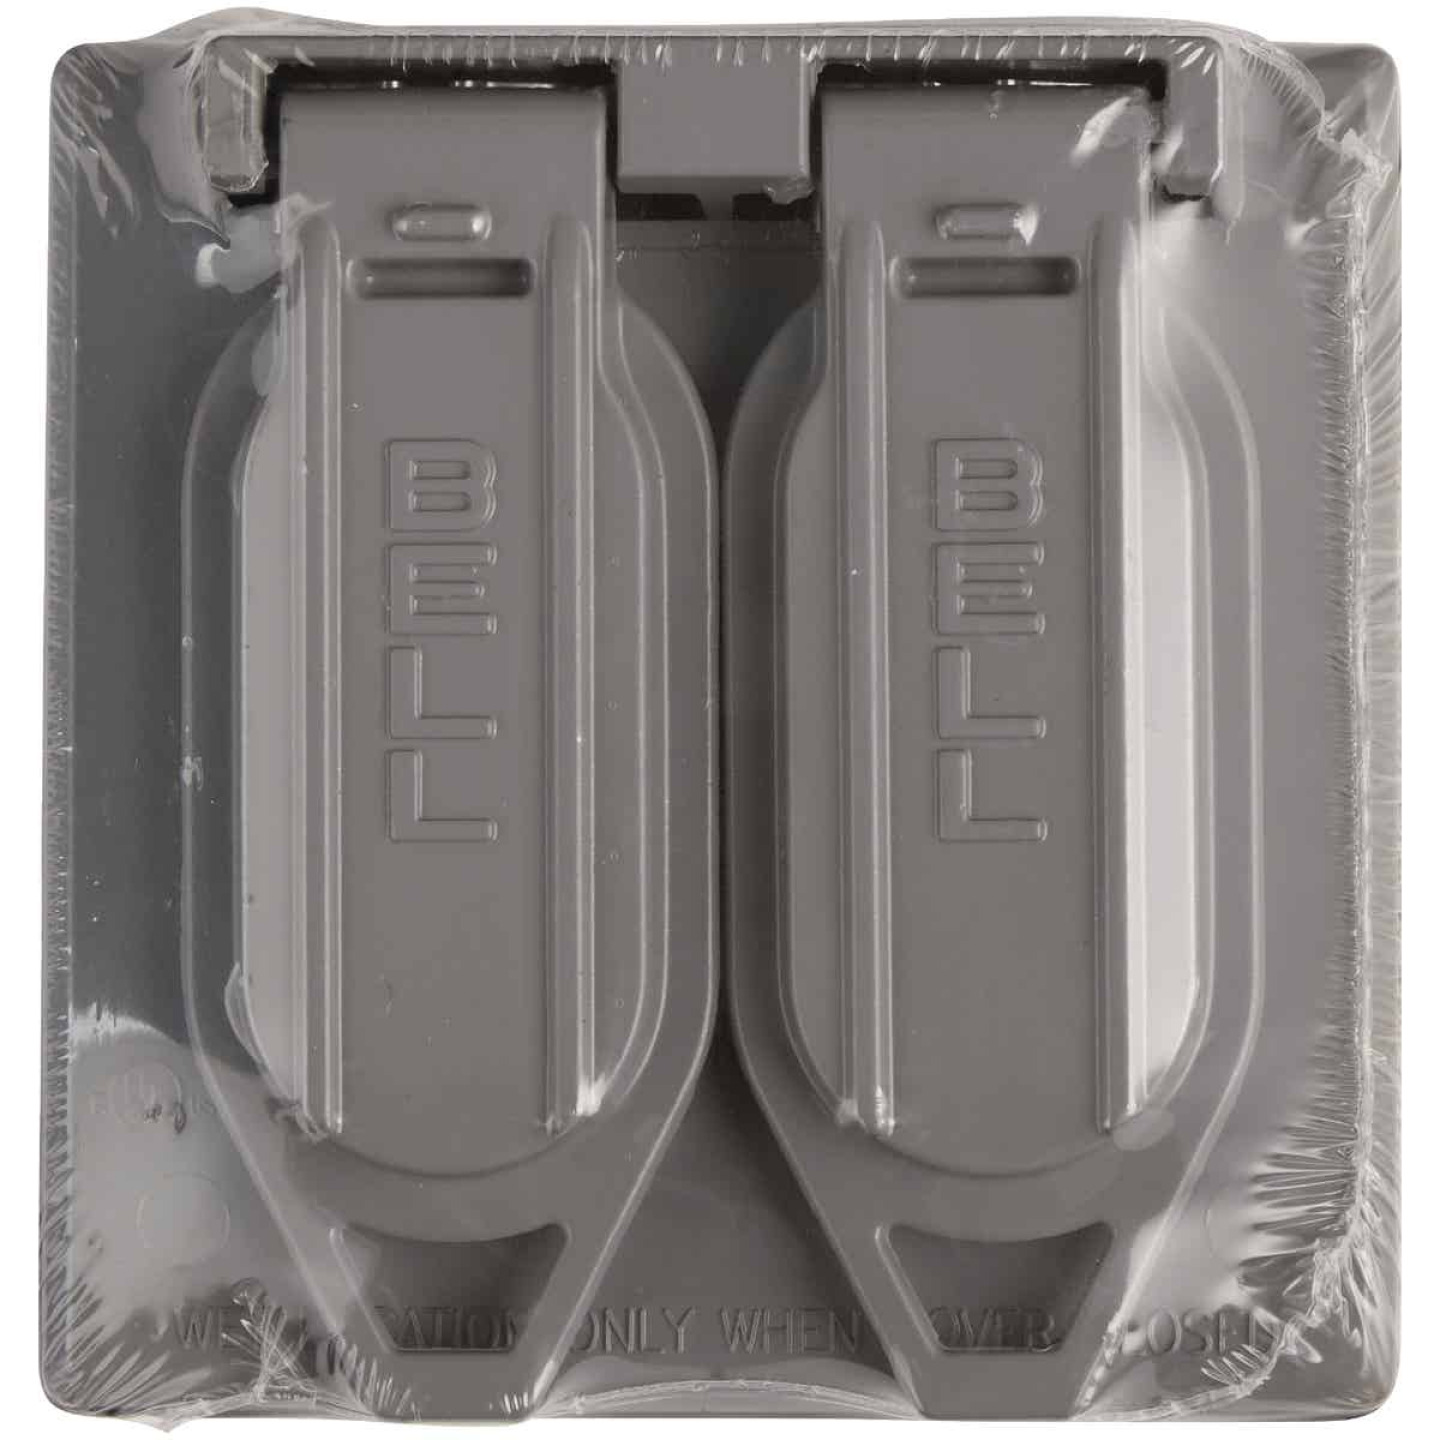 Bell 2-Gang Vertical Mount Die-Cast Metal Gray Weatherproof Outdoor Outlet Cover Image 2